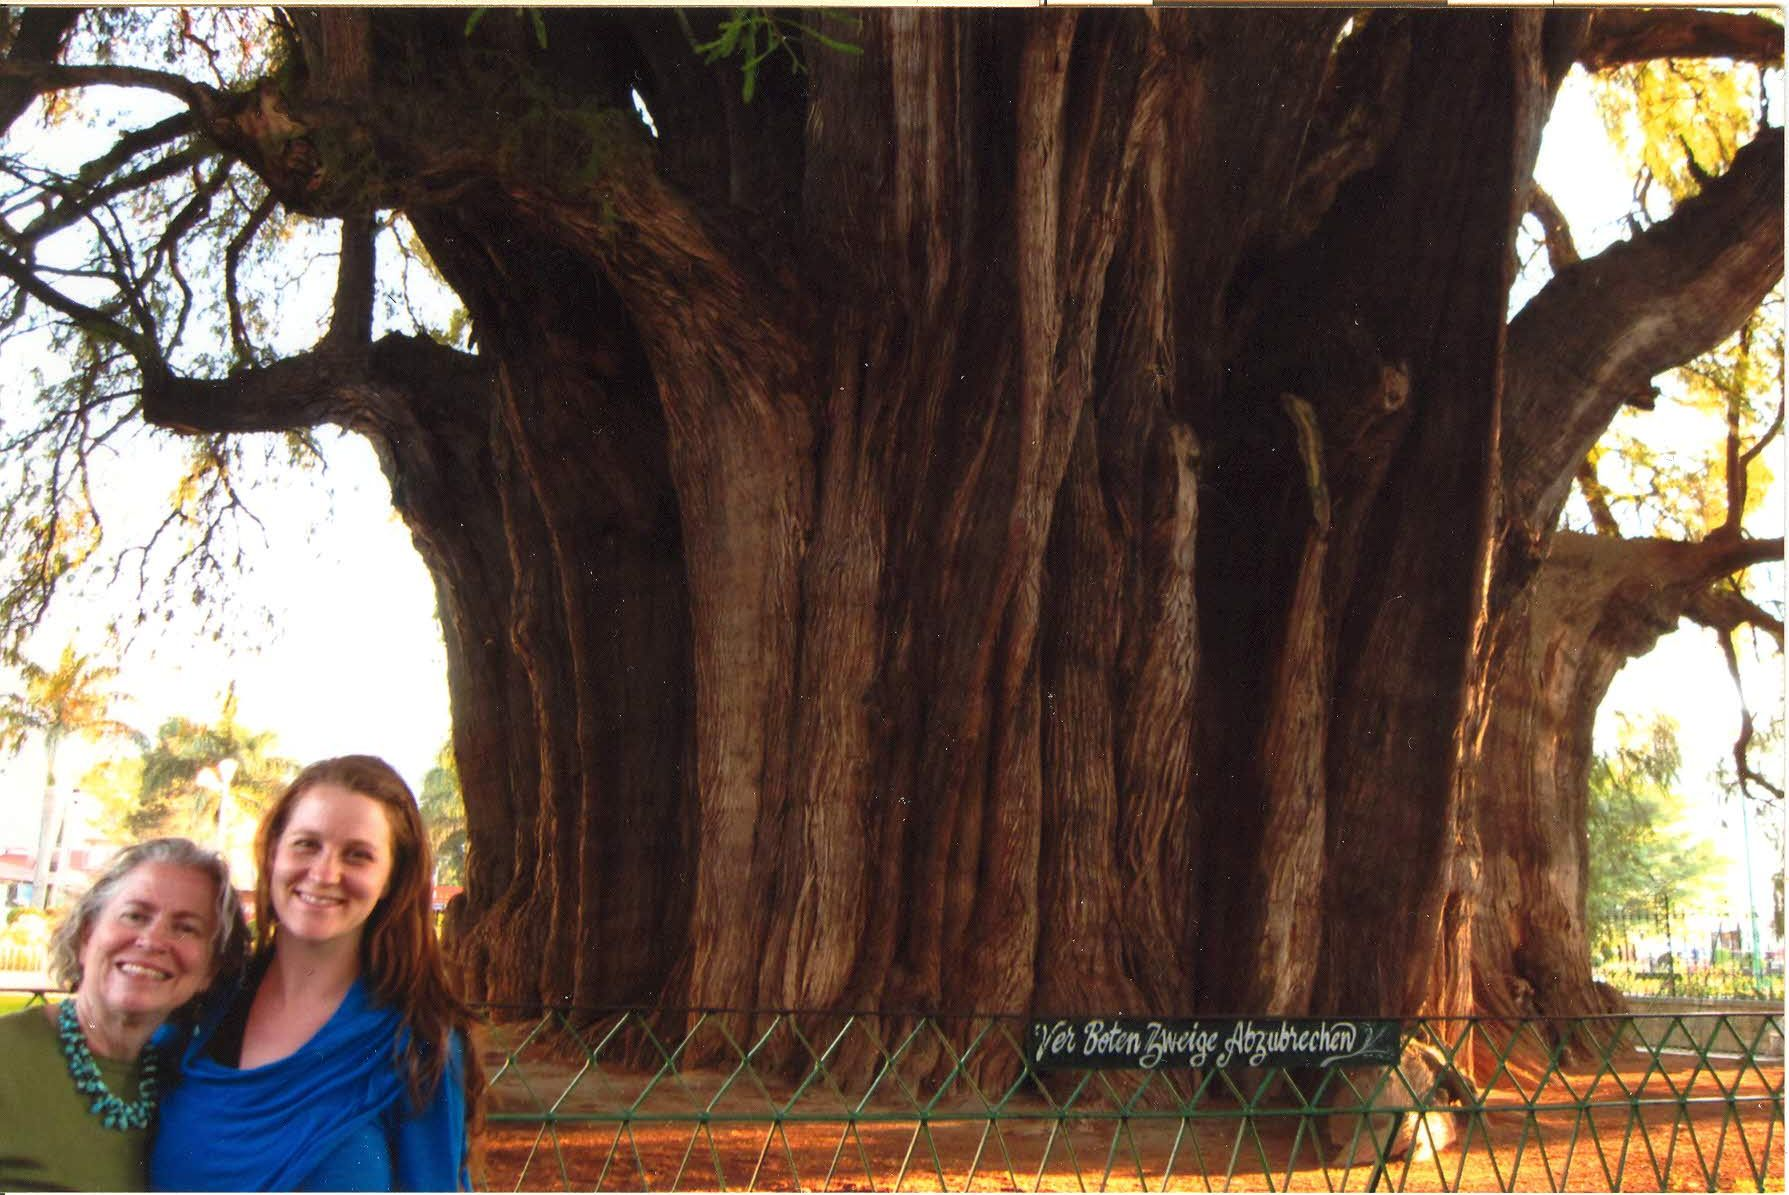 2013 - the same Tule tree with my daughter, Caitlin.